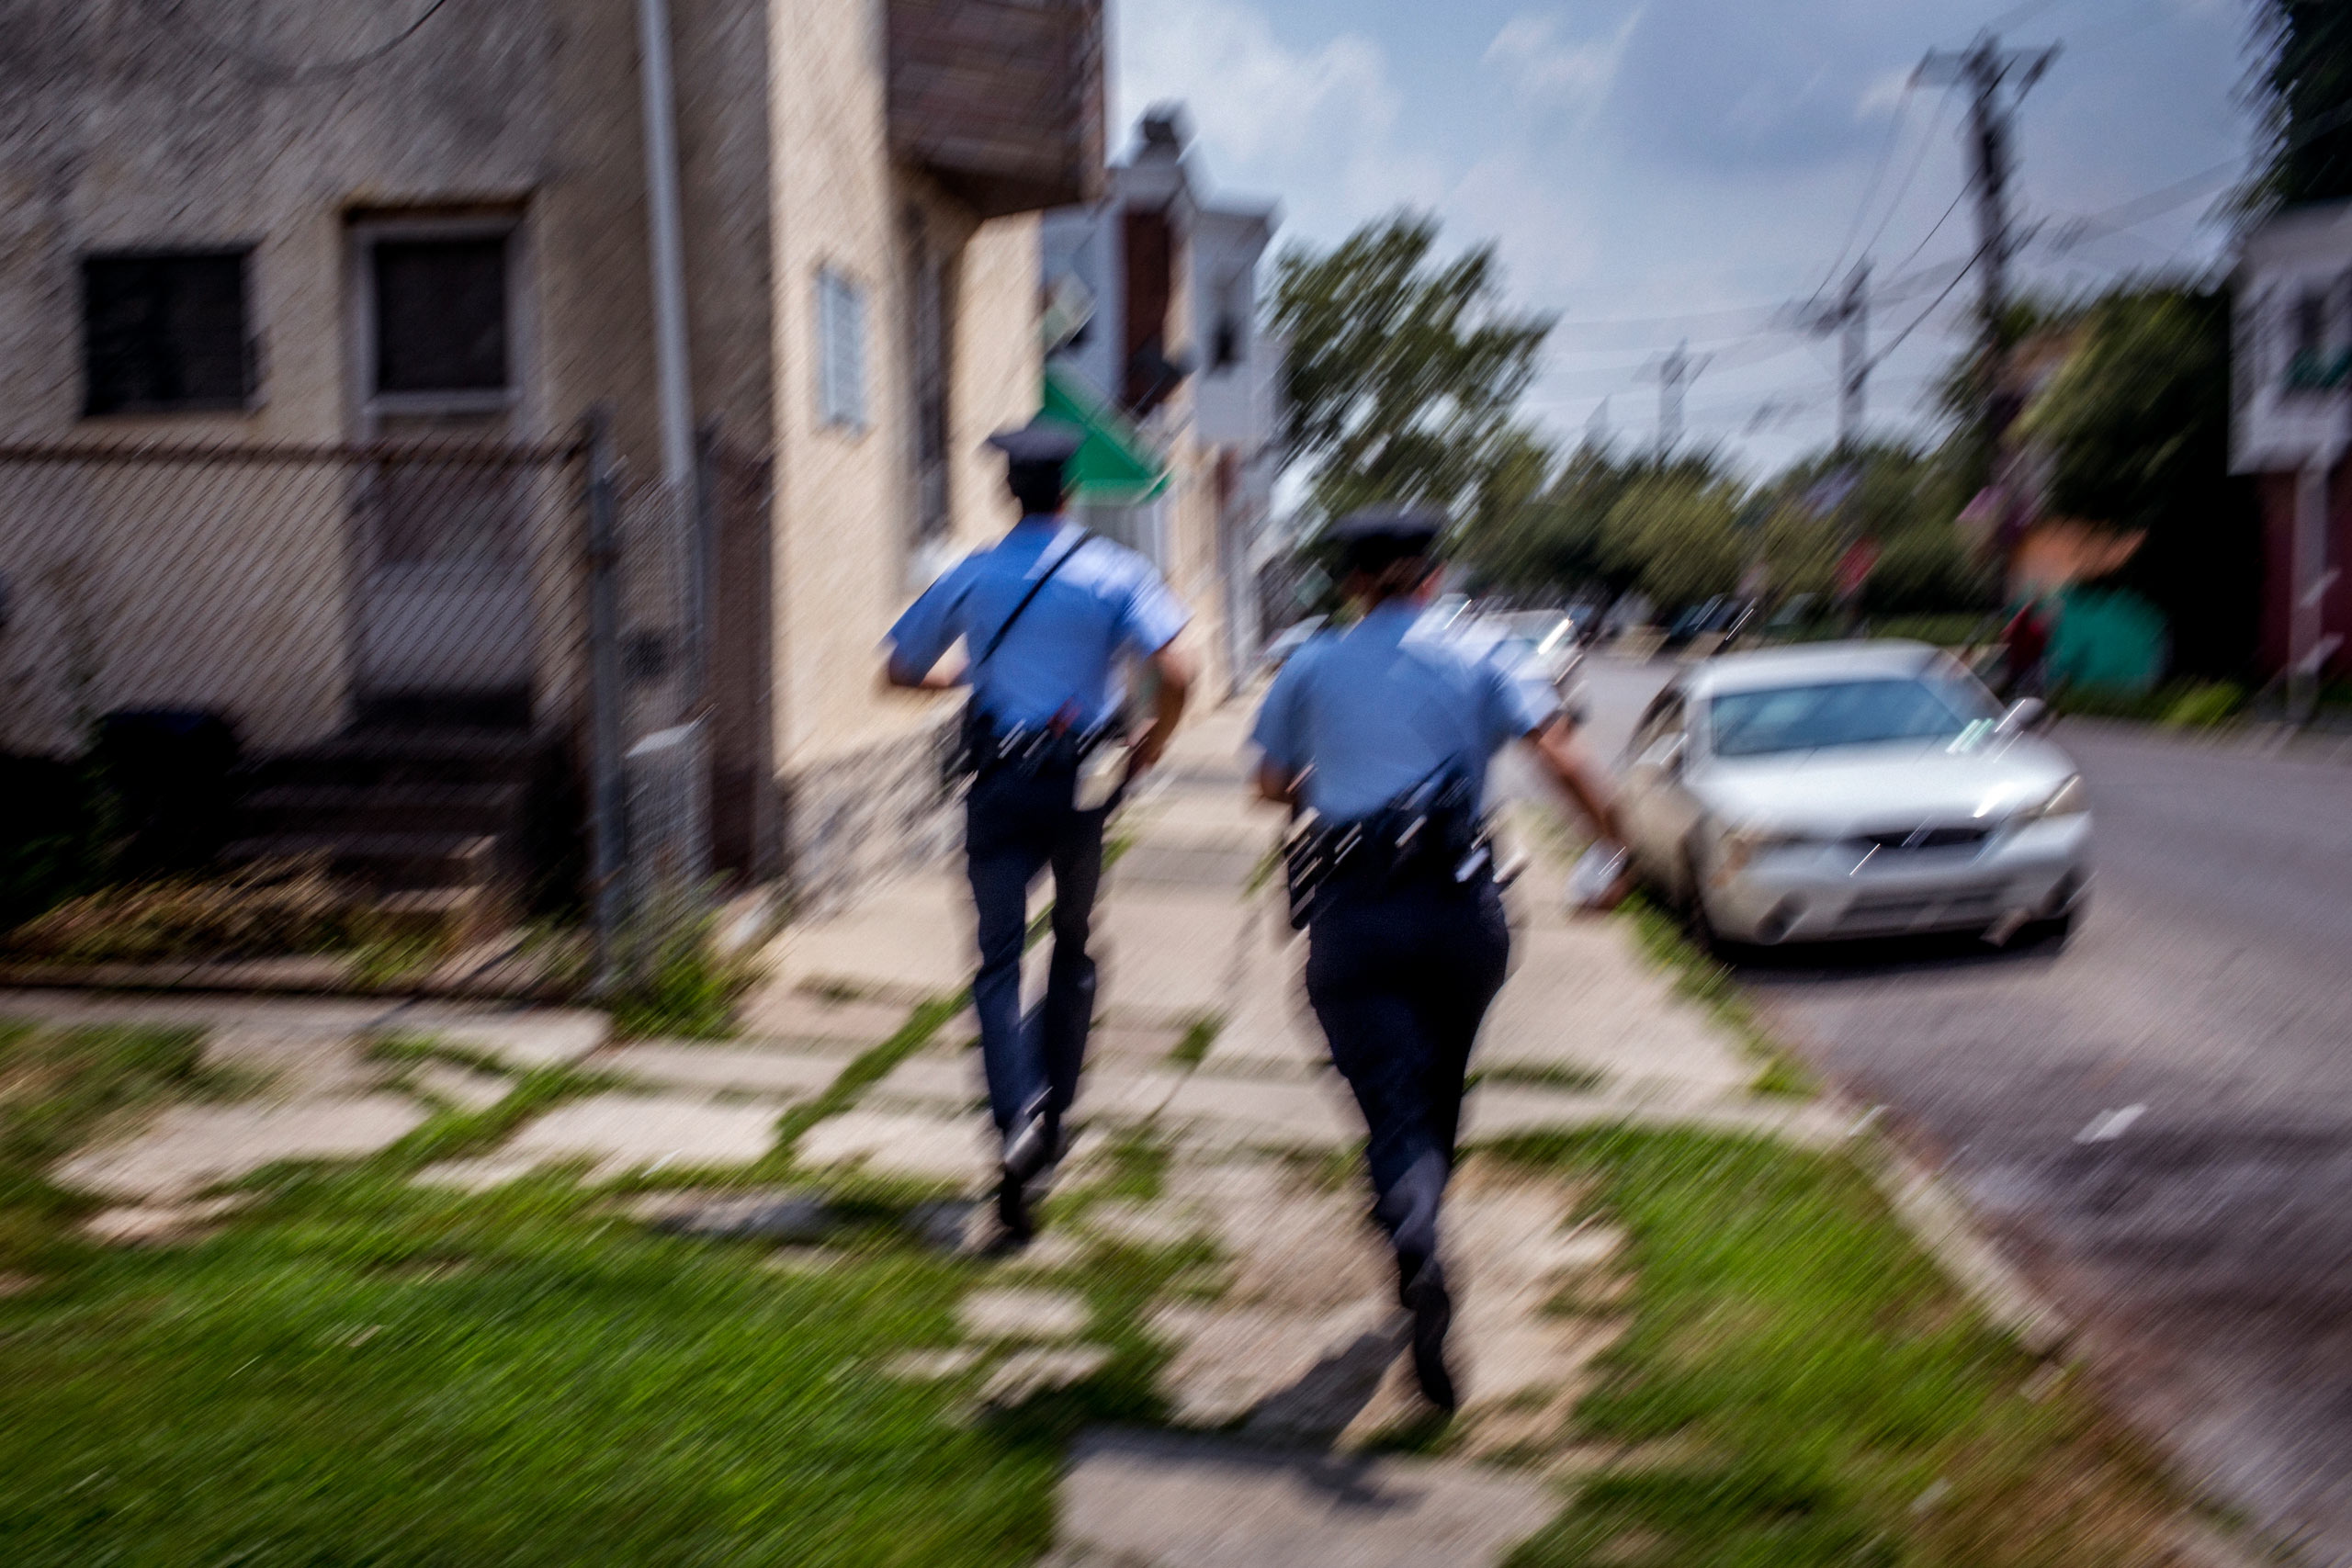 First year  foot beat  officers Jonathan Dedos (left) and Ashley Sipos (right) run down the street in West Philadelphia after a radio call comes in announcing that someone has been shot in a nearby housing complex. July 28, 2015. Philadelphia, Pa.